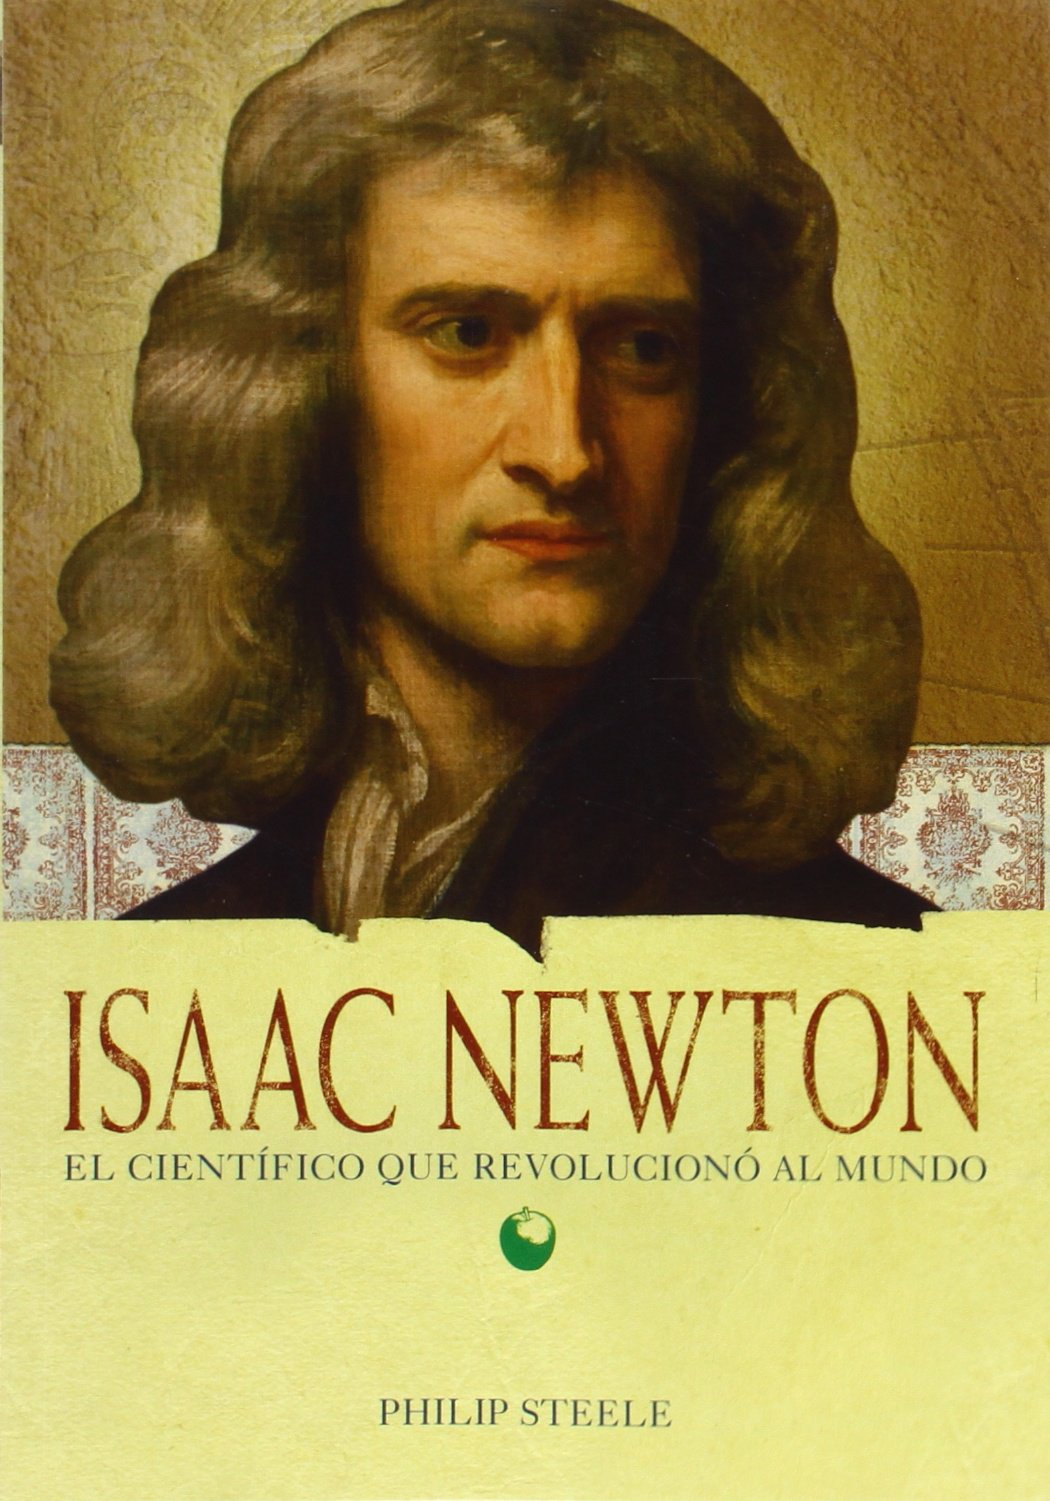 Isaac Newton: Mi Mejor Amigo Es La Verdad / My Best Friend is Truth (Biografias de Personajes Importantes en la Historia del Mundo) (Spanish Edition)